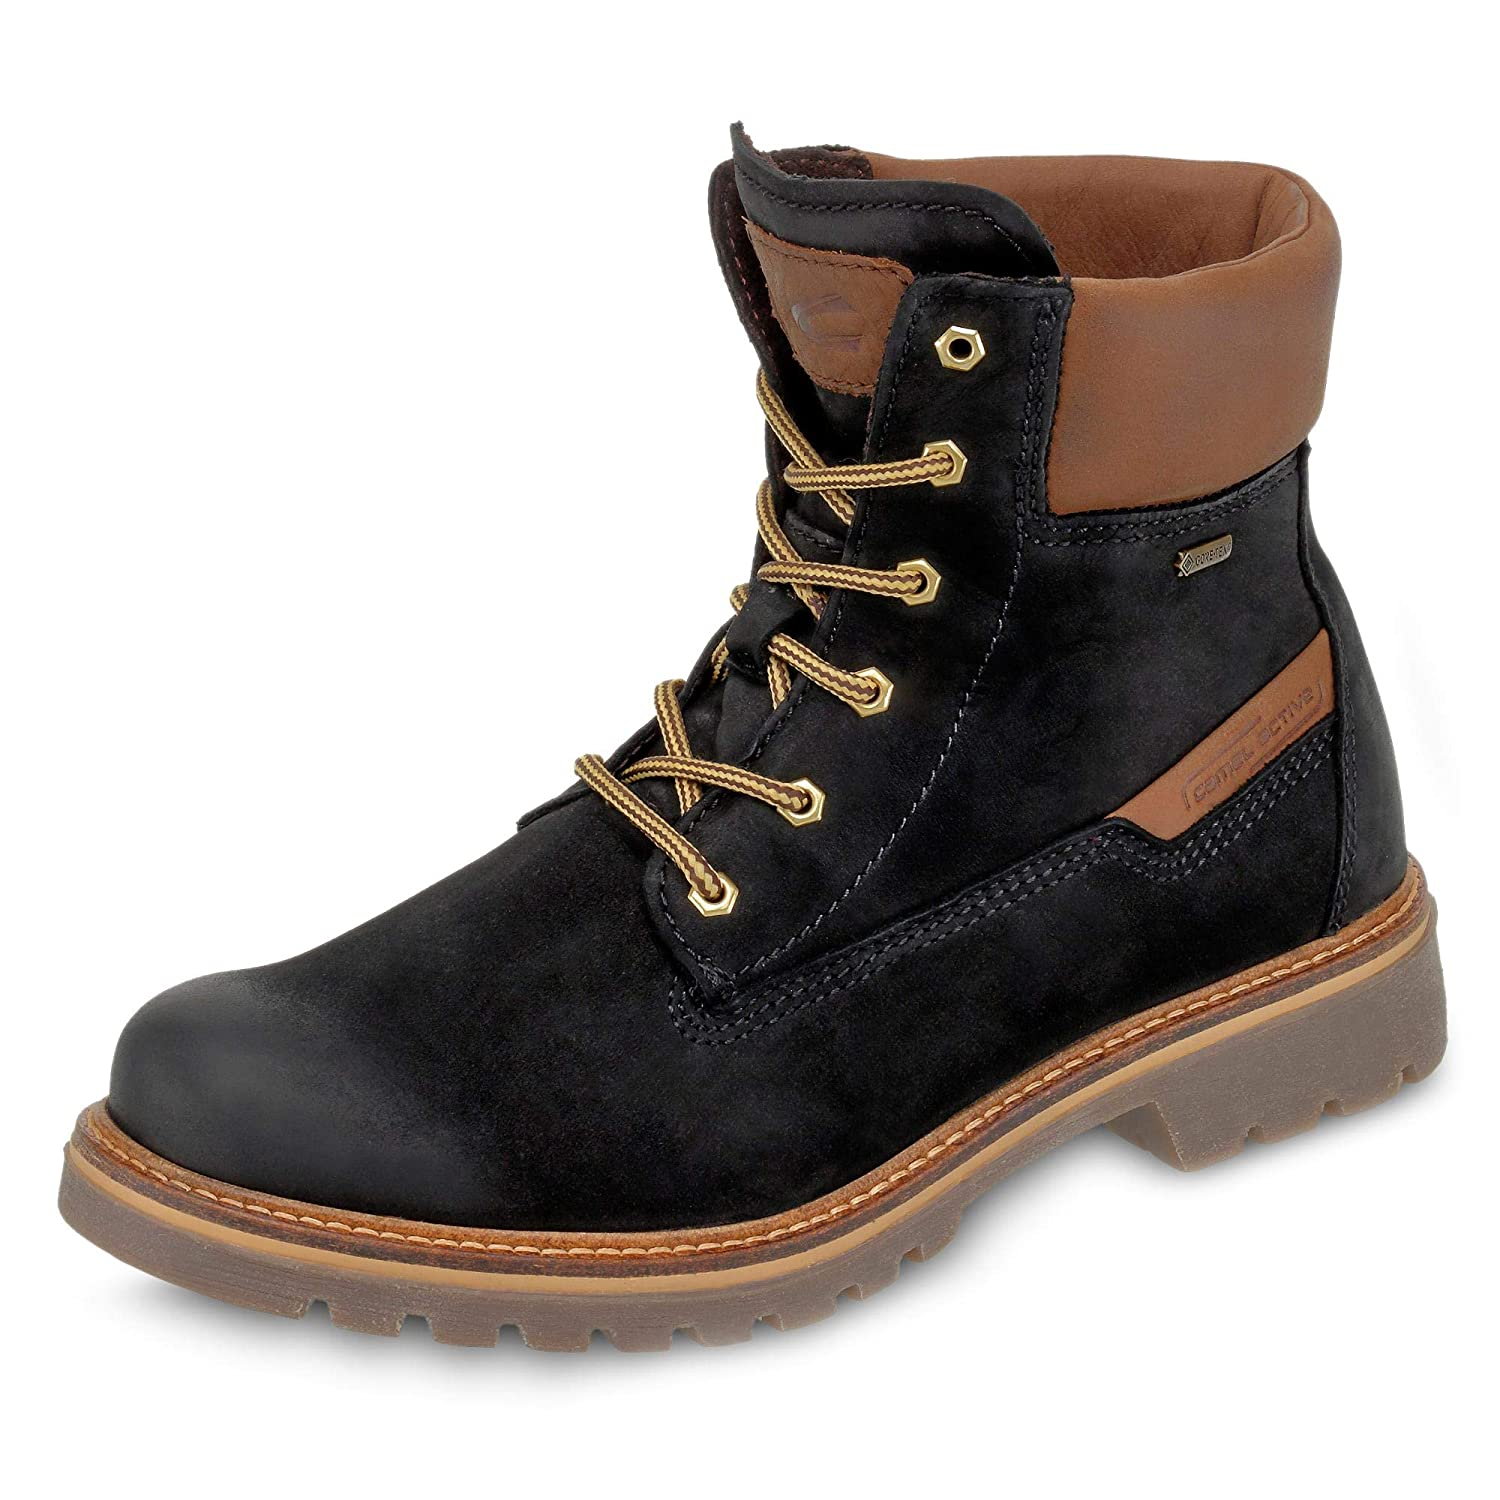 Camel active Canberra Stiefel GTX 70 Stiefel Canberra 874.70.15 89aa89